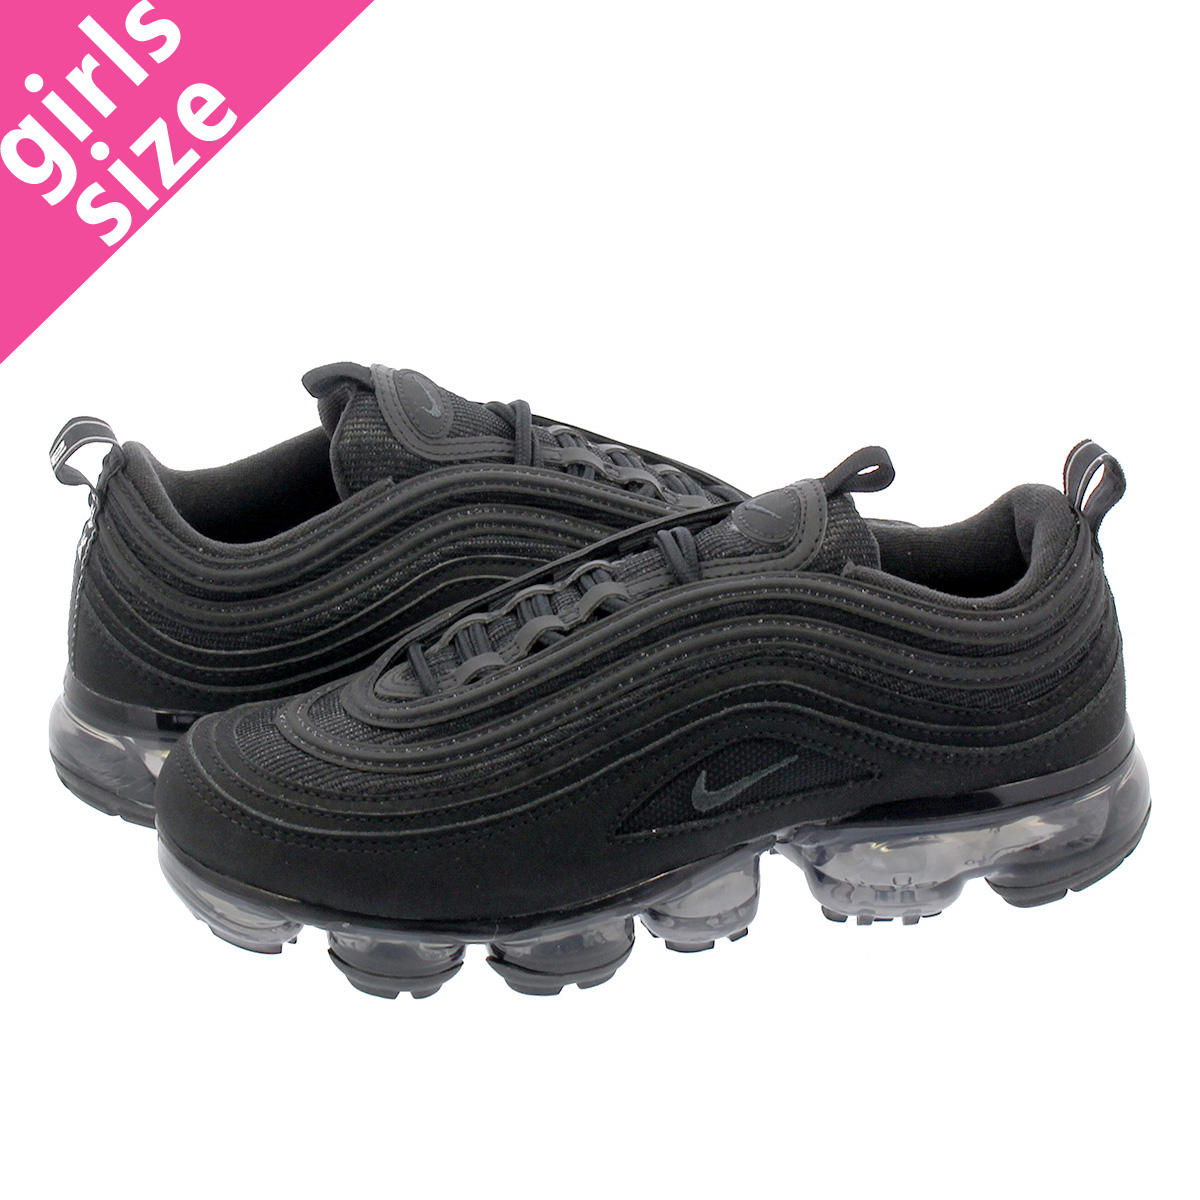 finest selection fda46 8a6d9 NIKE AIR VAPORMAX 97 GS Nike air vapor max 97 GS BLACK/BLACK aq2657-001